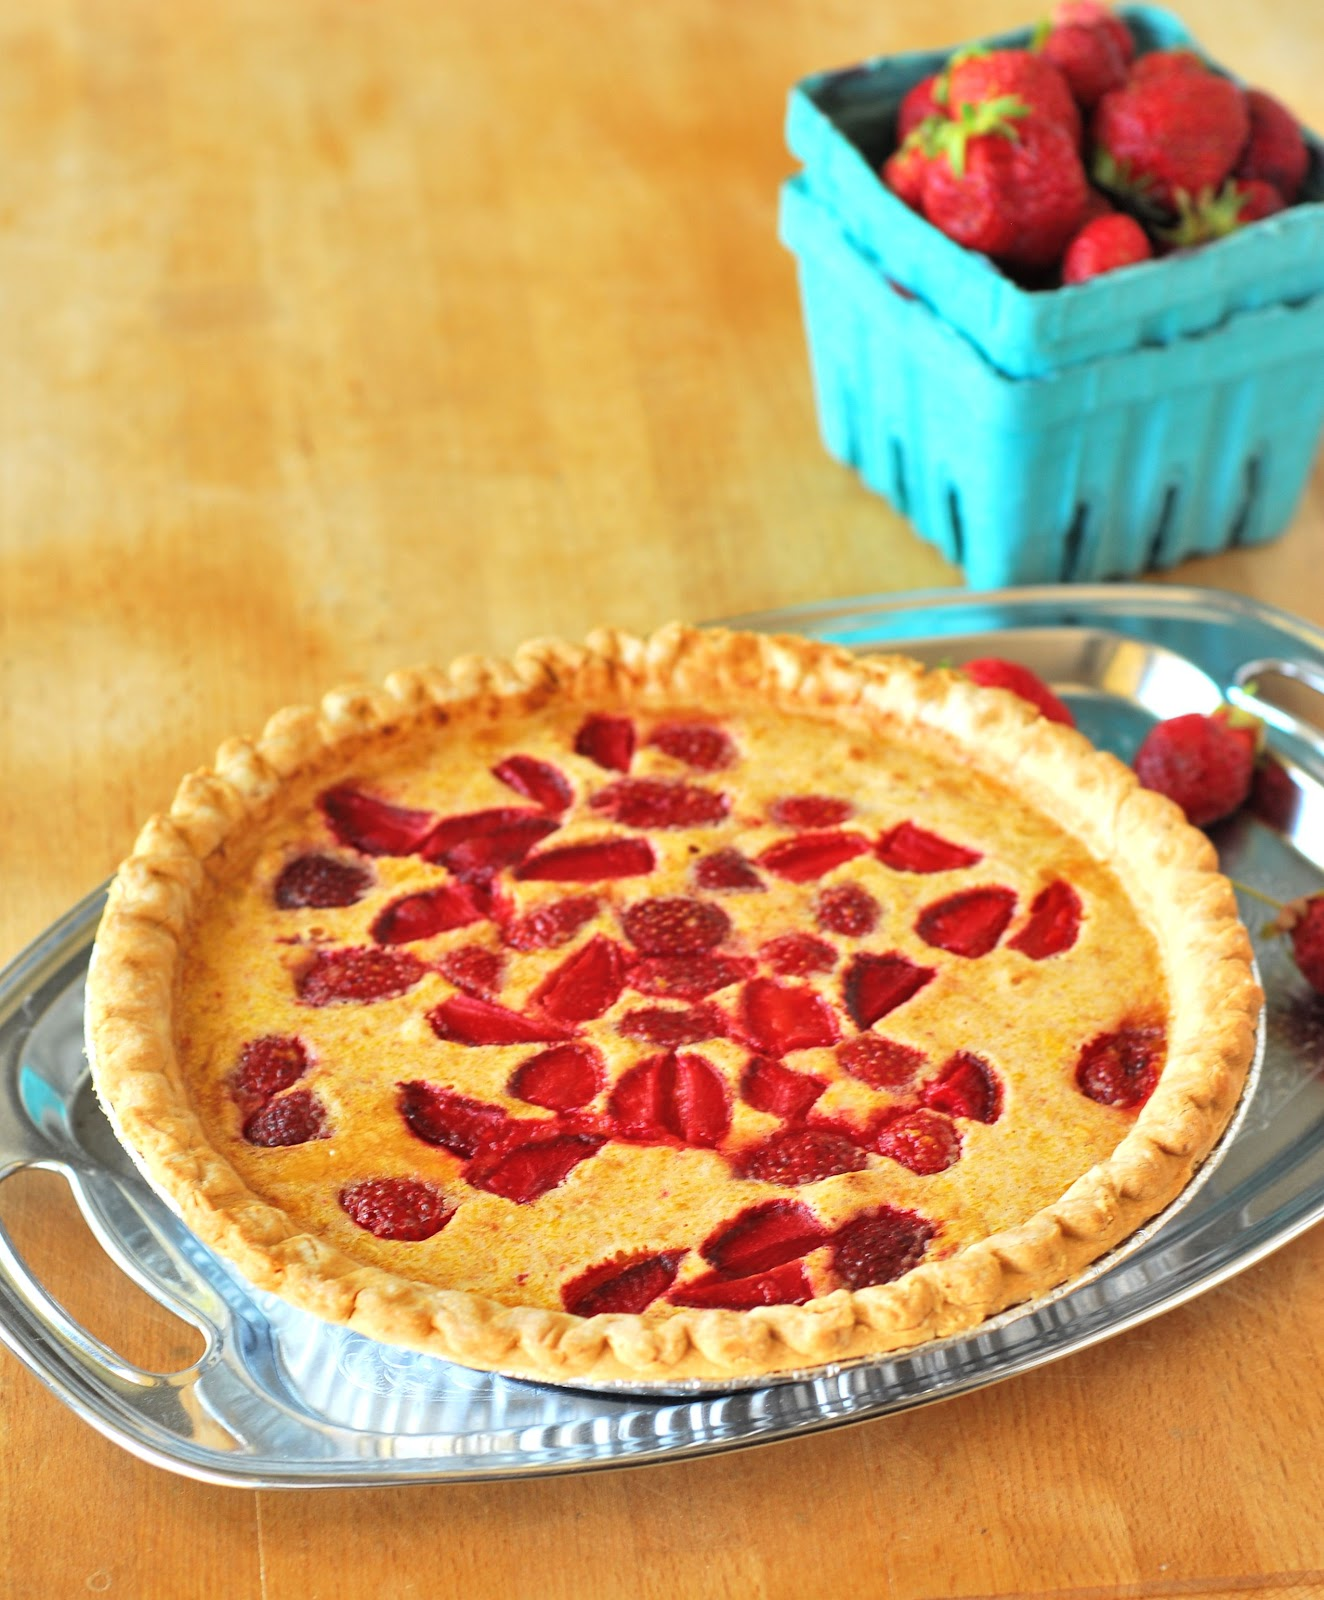 ... strawberry lemonade icebox pie inspires a strawberry lemonade icebox